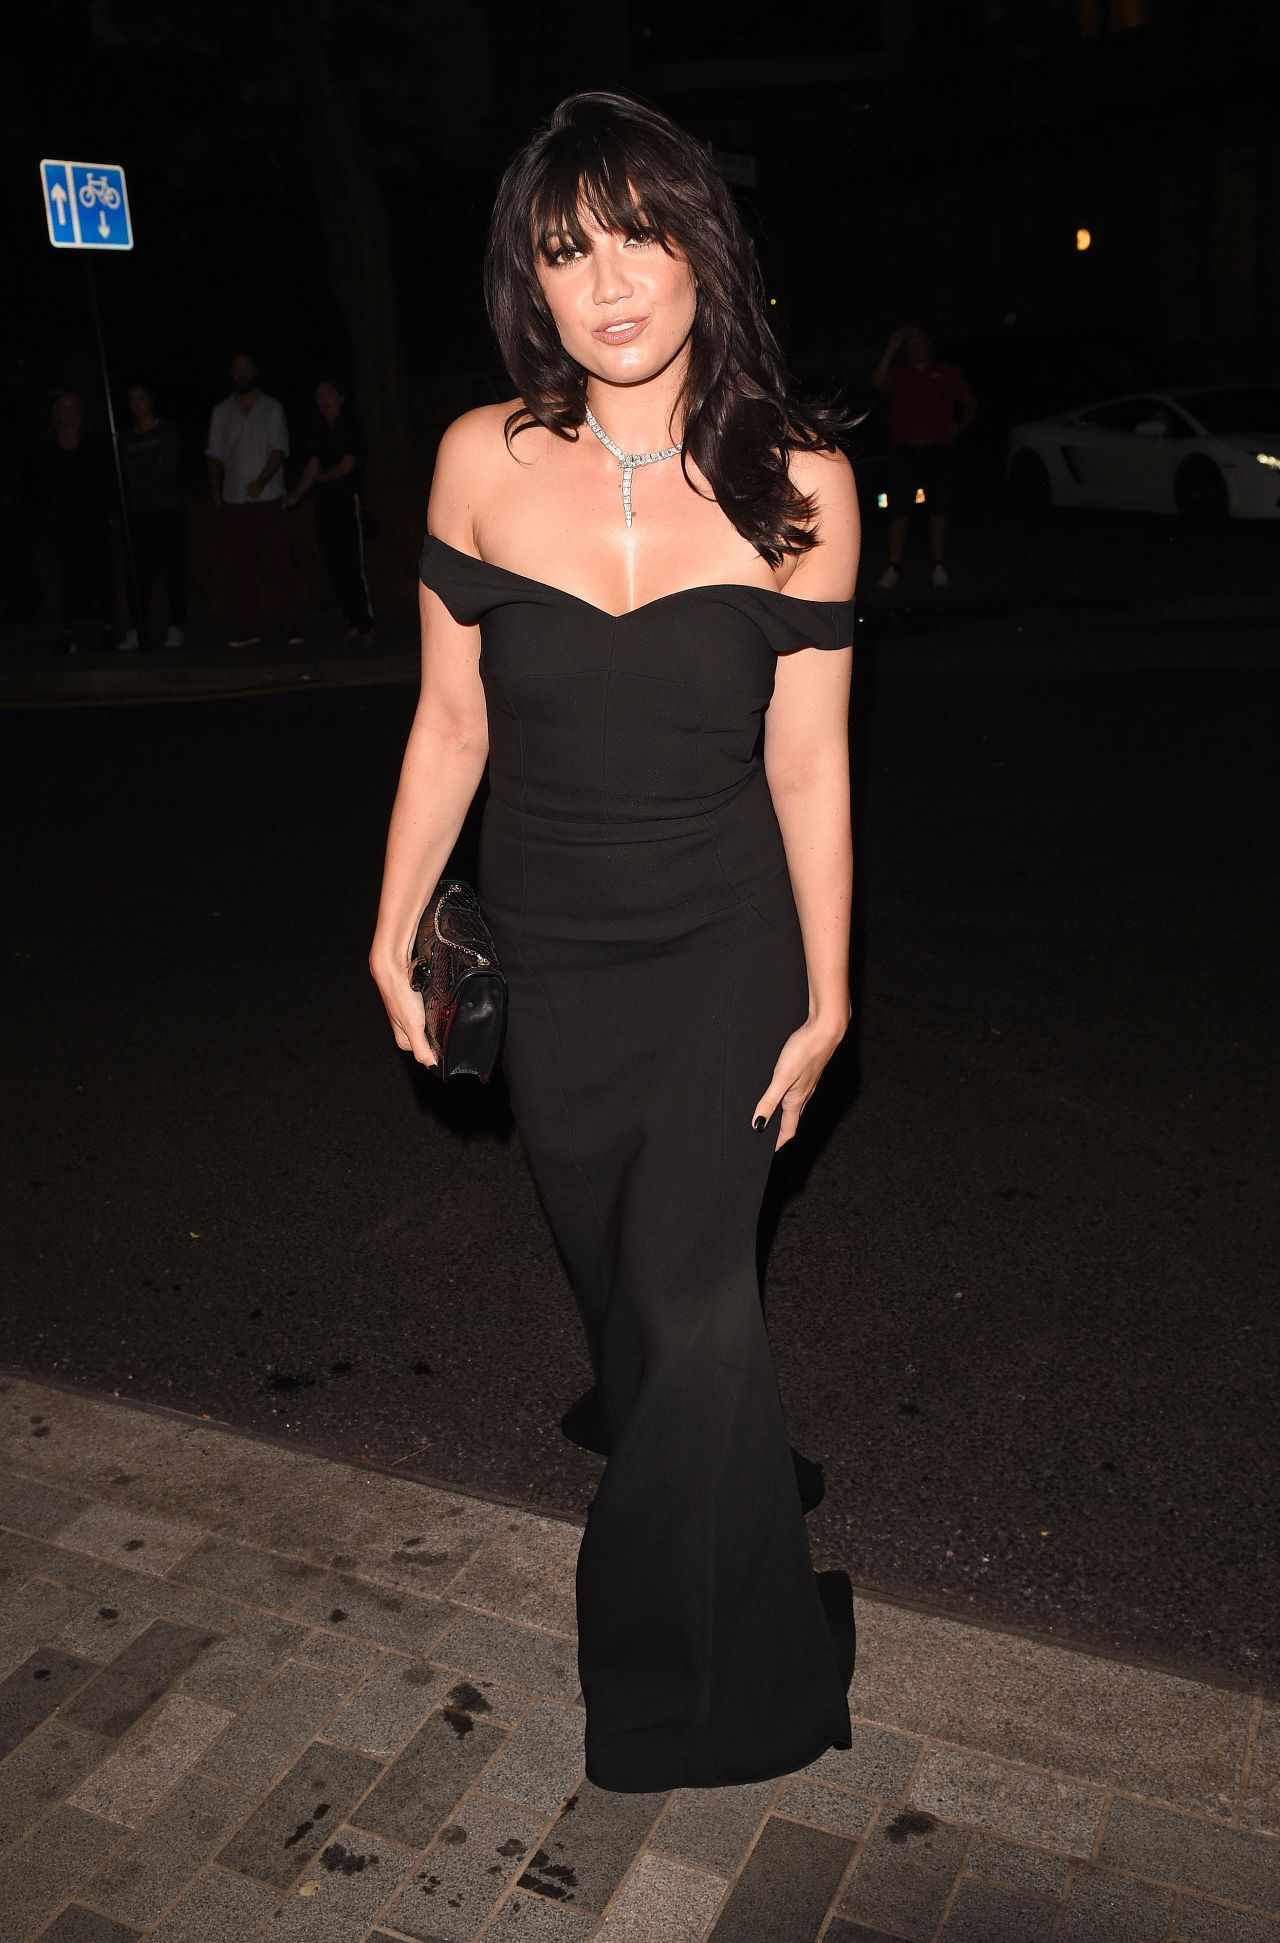 Daisy Lowe Gq Men Of The Year Awards In London 9 6 2016